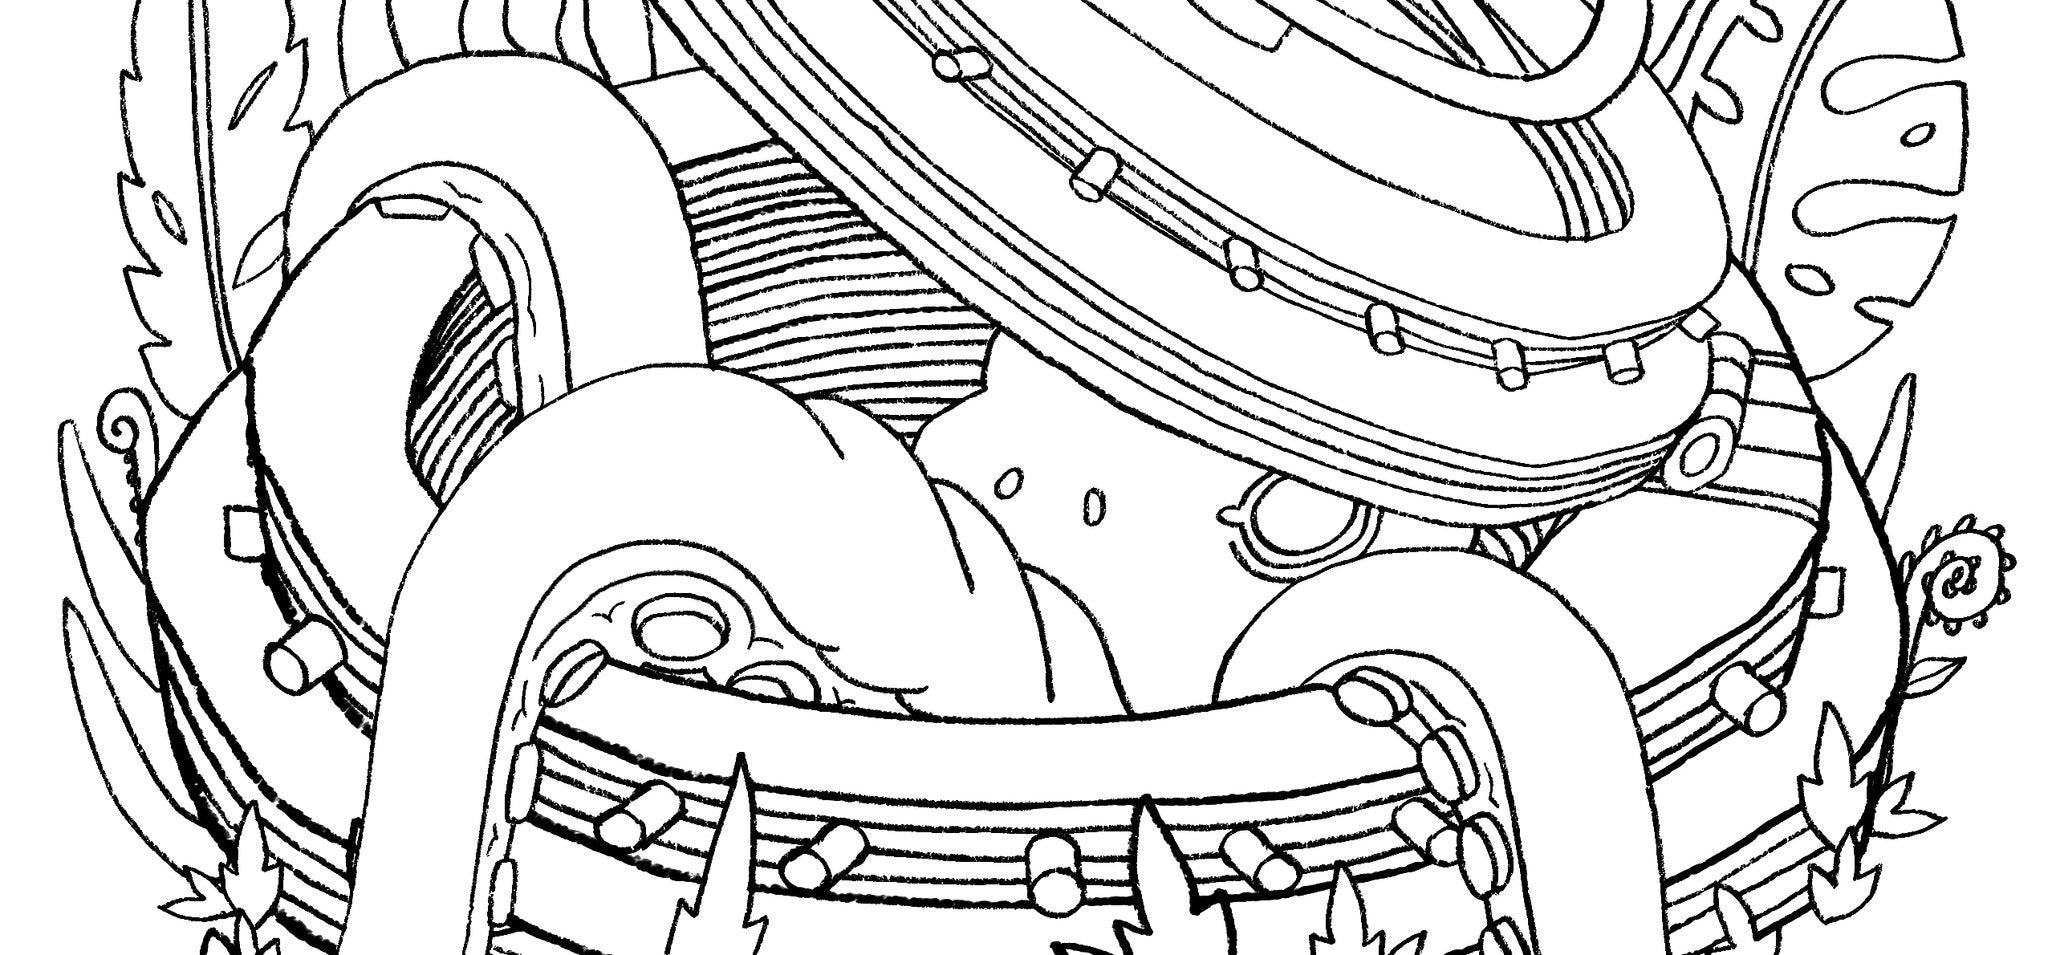 Octopod Free Coloring Page | Saturday Morning Cartoons